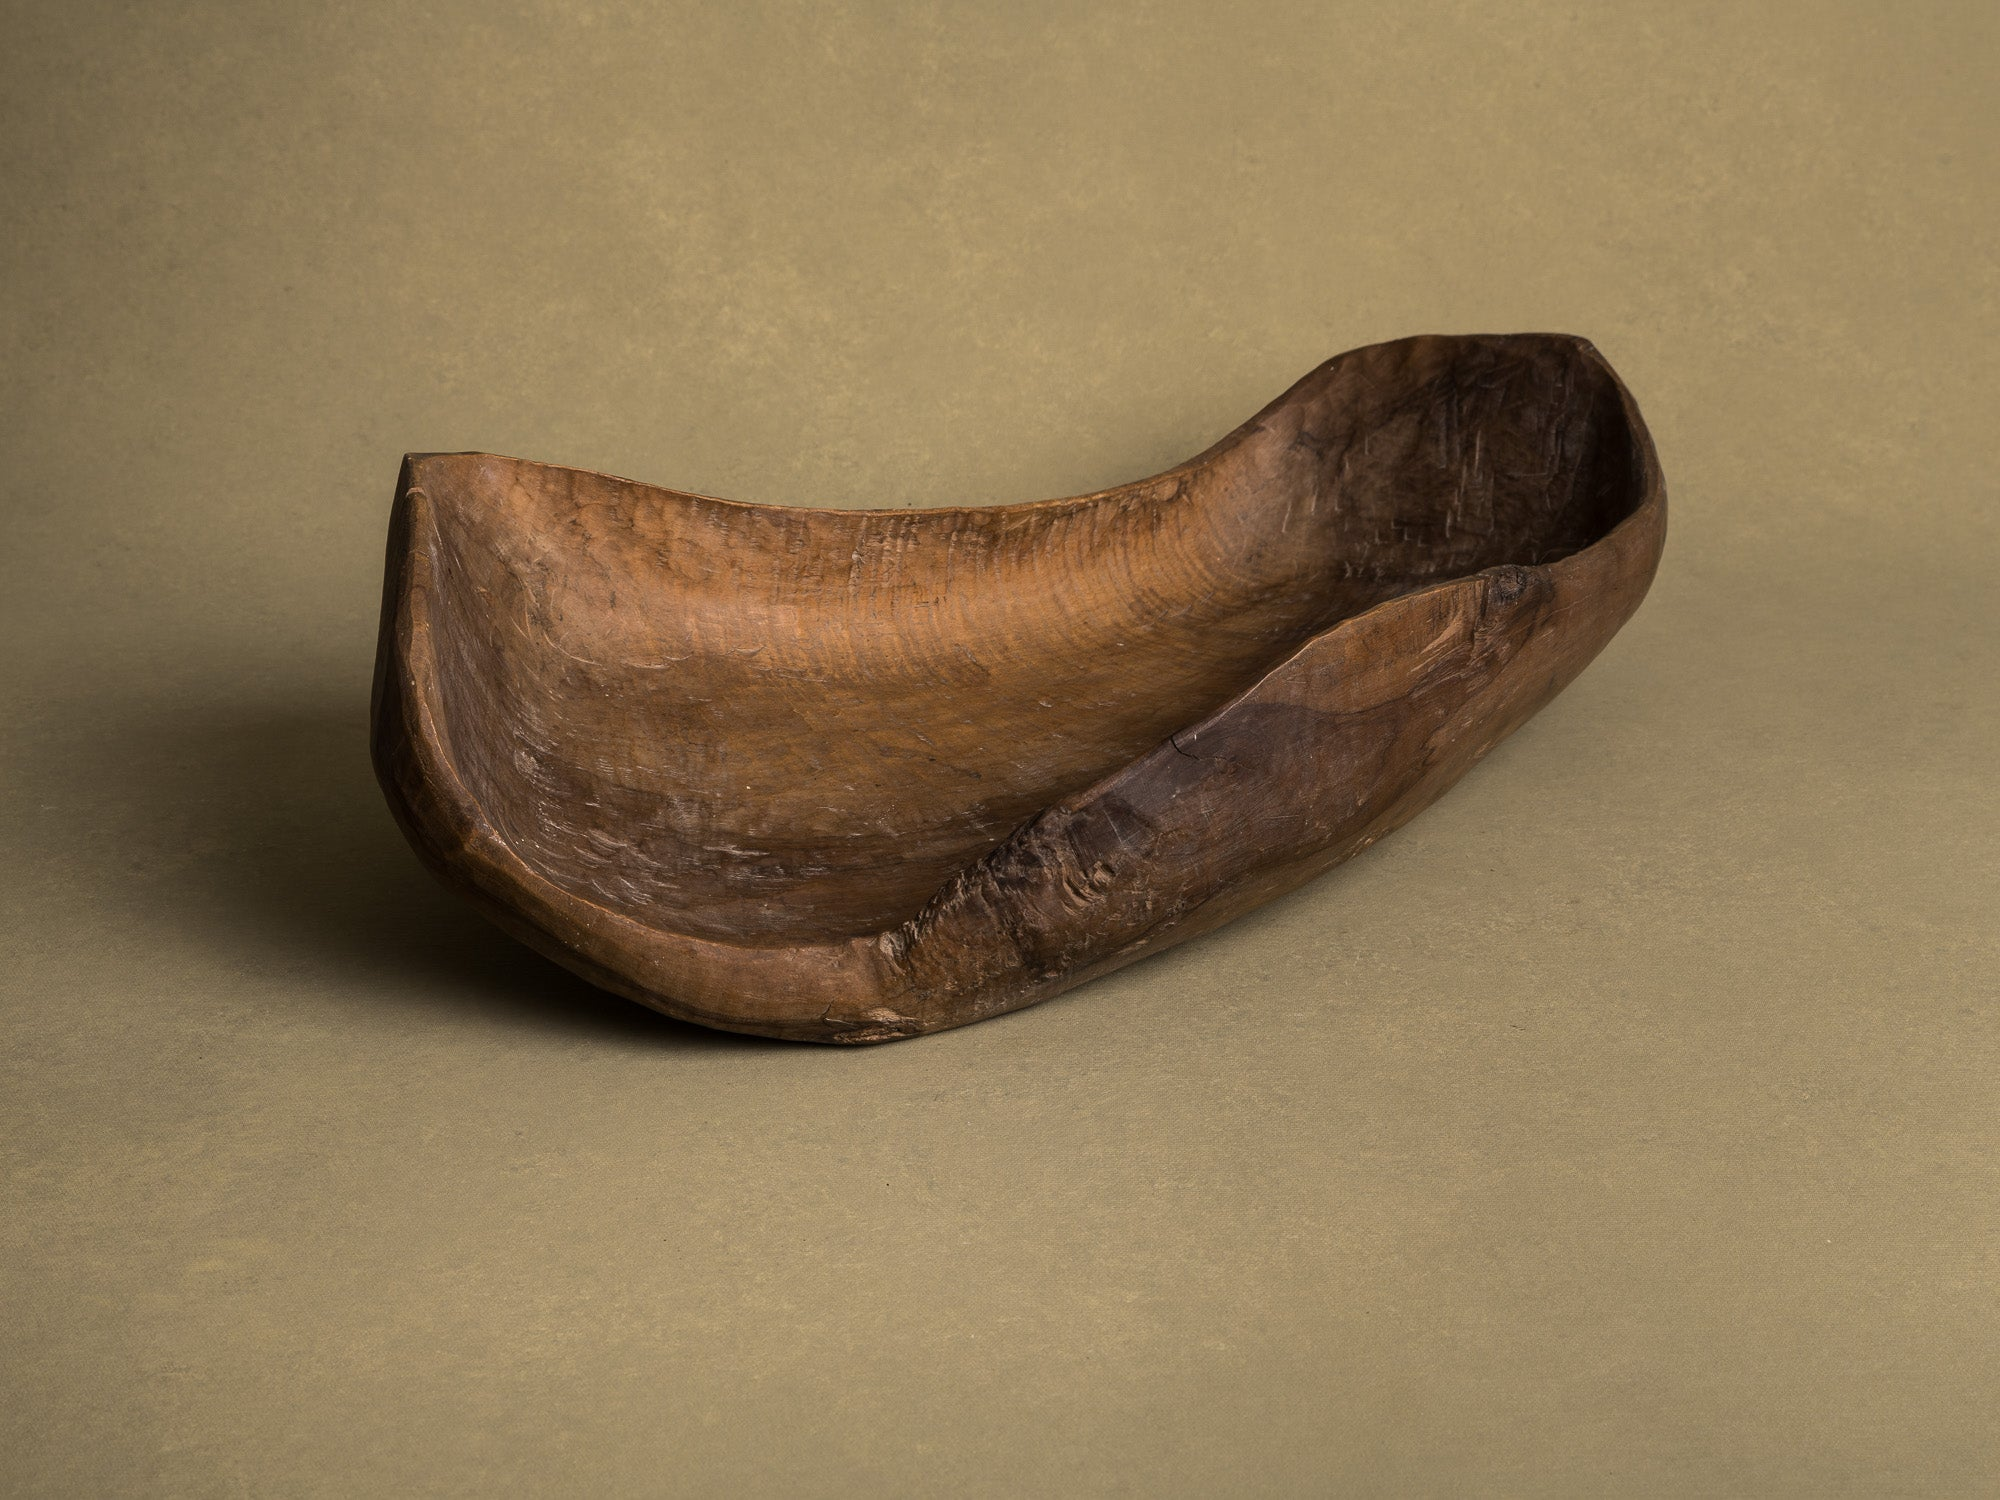 Coupe monoxyle normande en noyer, art paysan, France (XIXe siècle)..Free form carved Norman walnut wooden bowl, Peasant art, France (19th century)